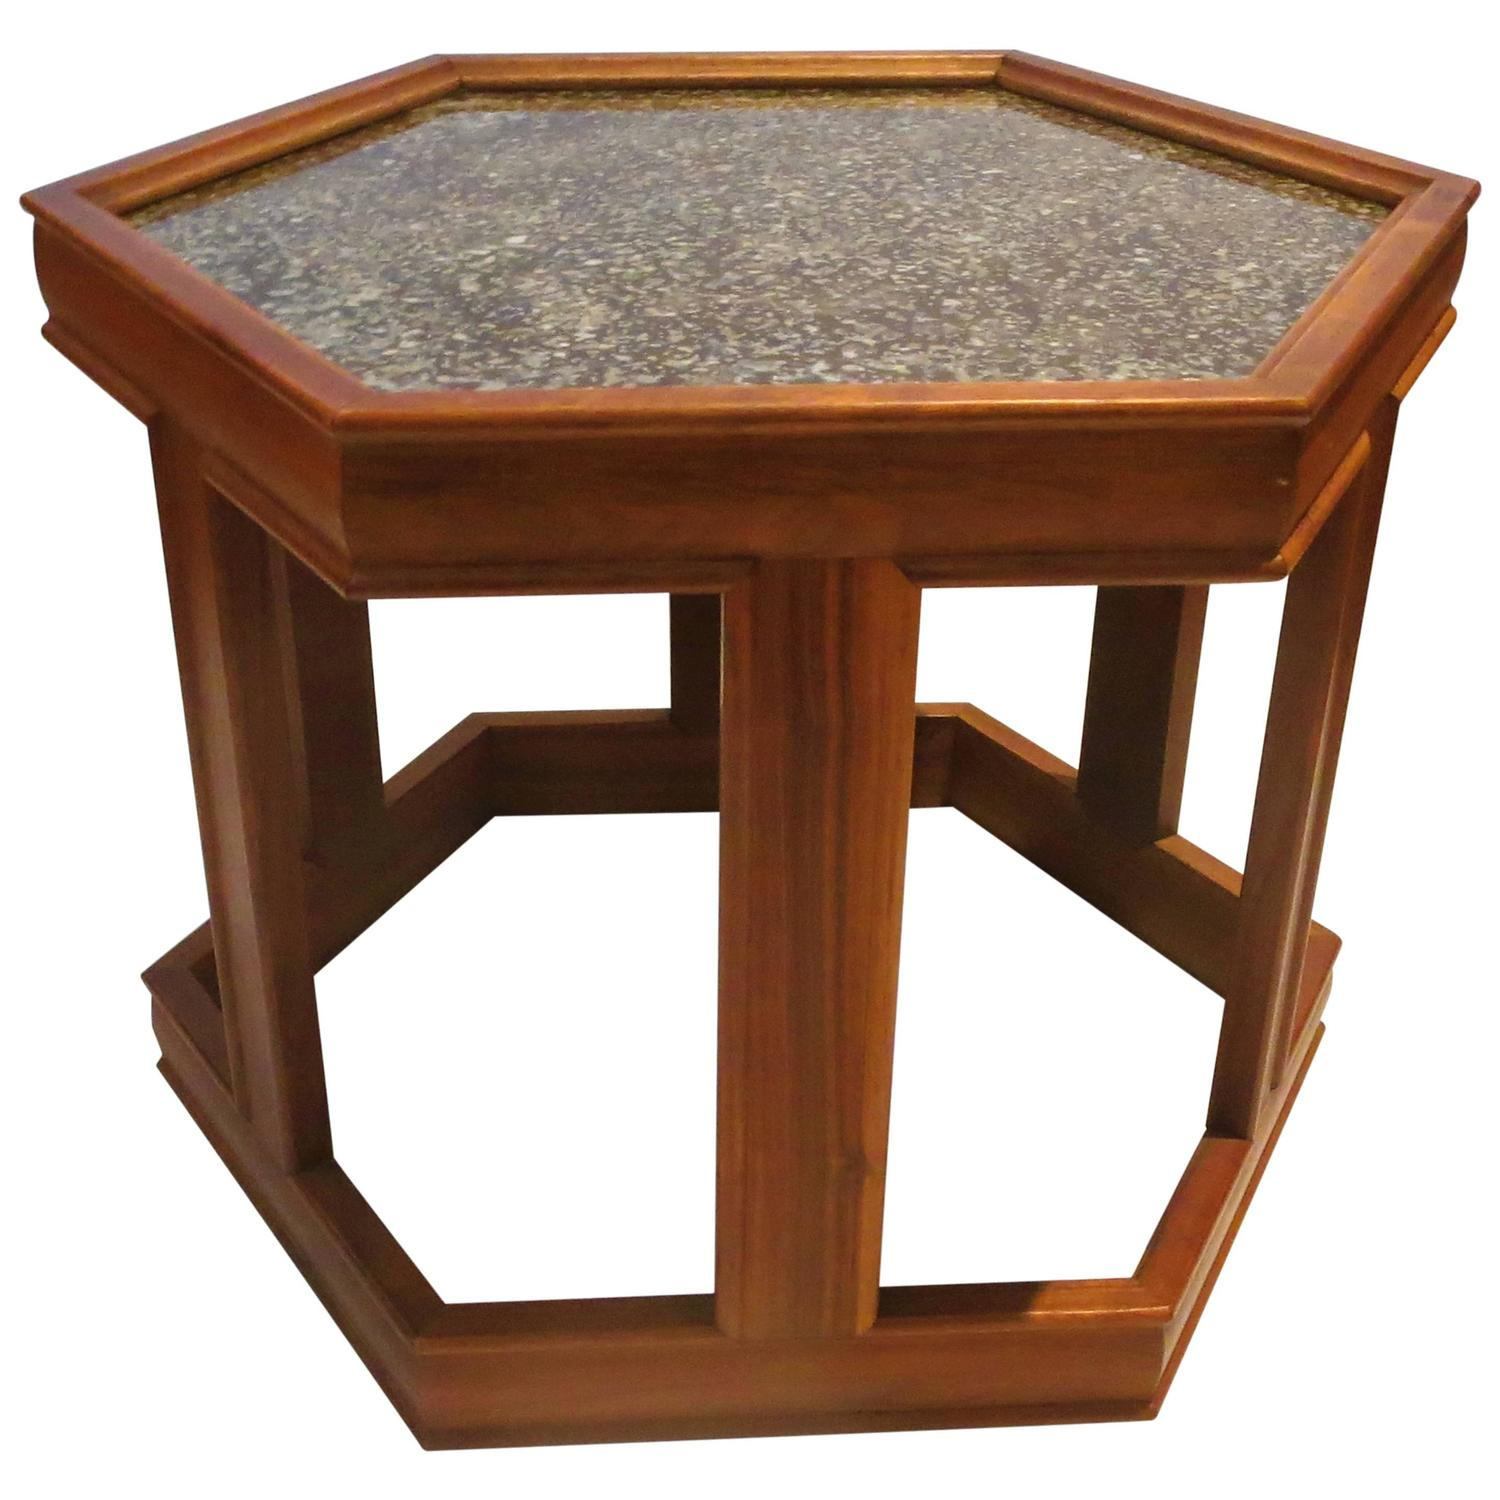 Mid Century American Hexagon End Table Design By John Keal For Brown Saltman At 1stdibs